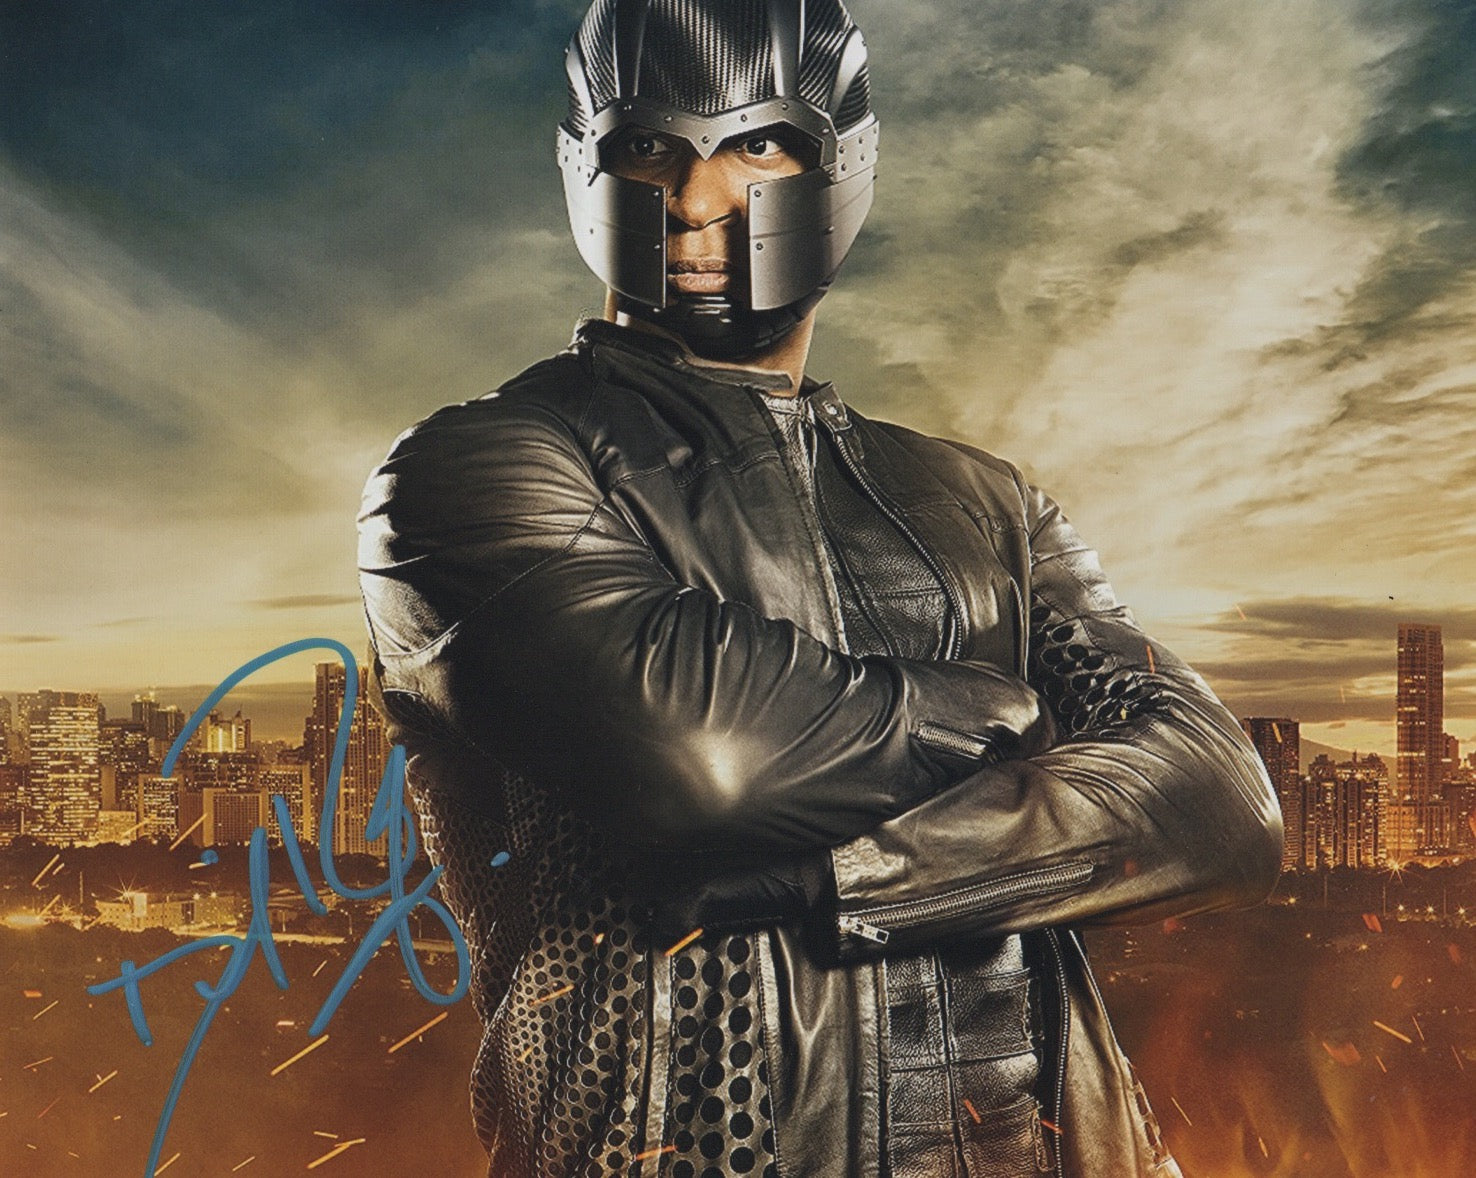 David Ramsey Arrow Signed Autograph 8x10 Photo - Outlaw Hobbies Authentic Autographs